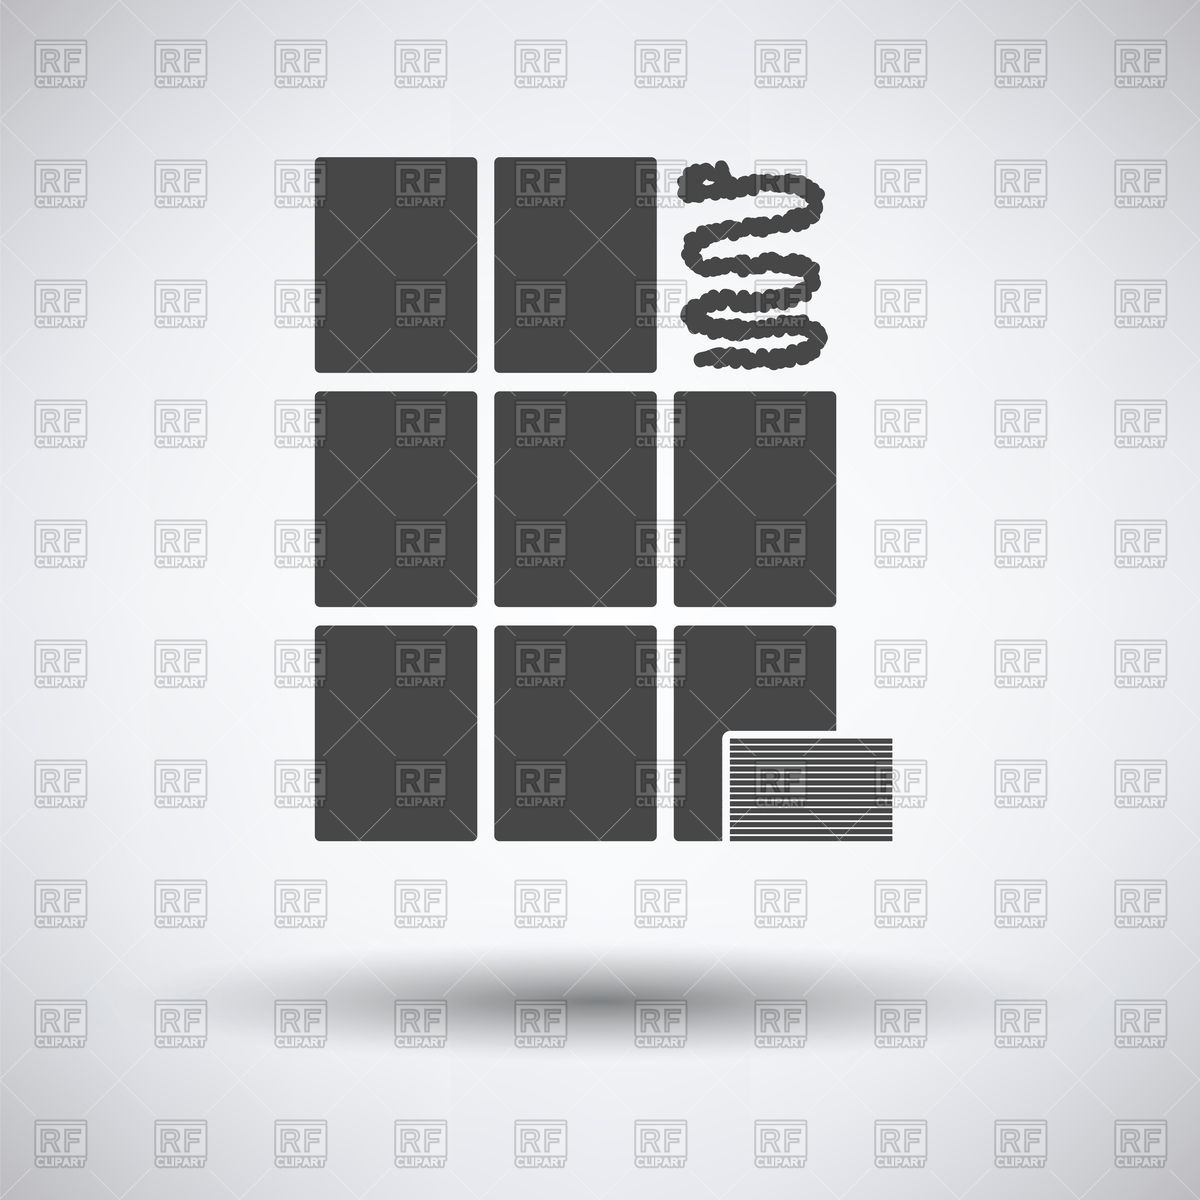 Wall tiles icon on a gray background Vector Image #122803.